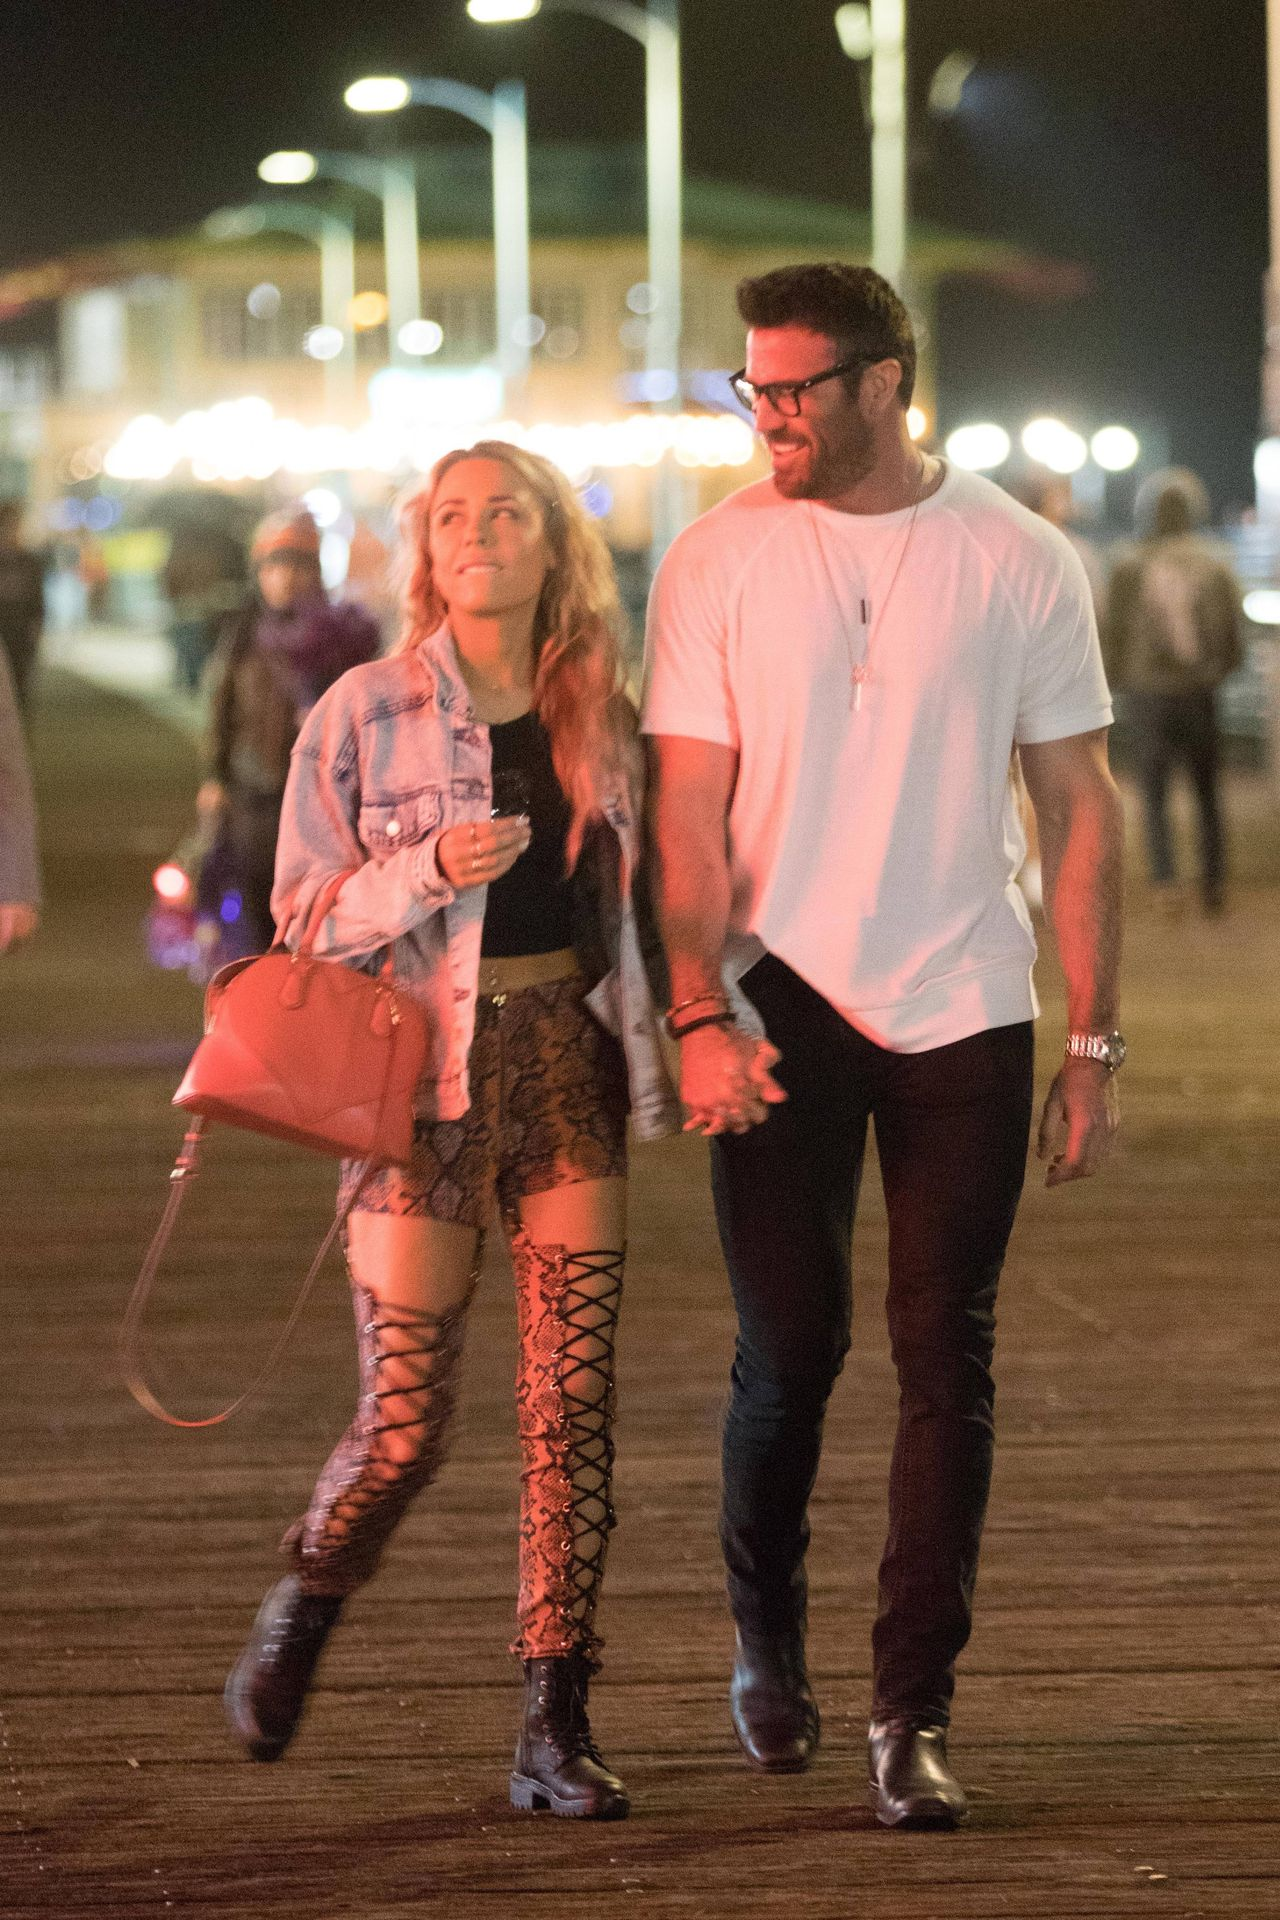 Chad Johnson & Annalise Mishler Are Seen On A Low Key Date At The Santa Monica Pier 0022